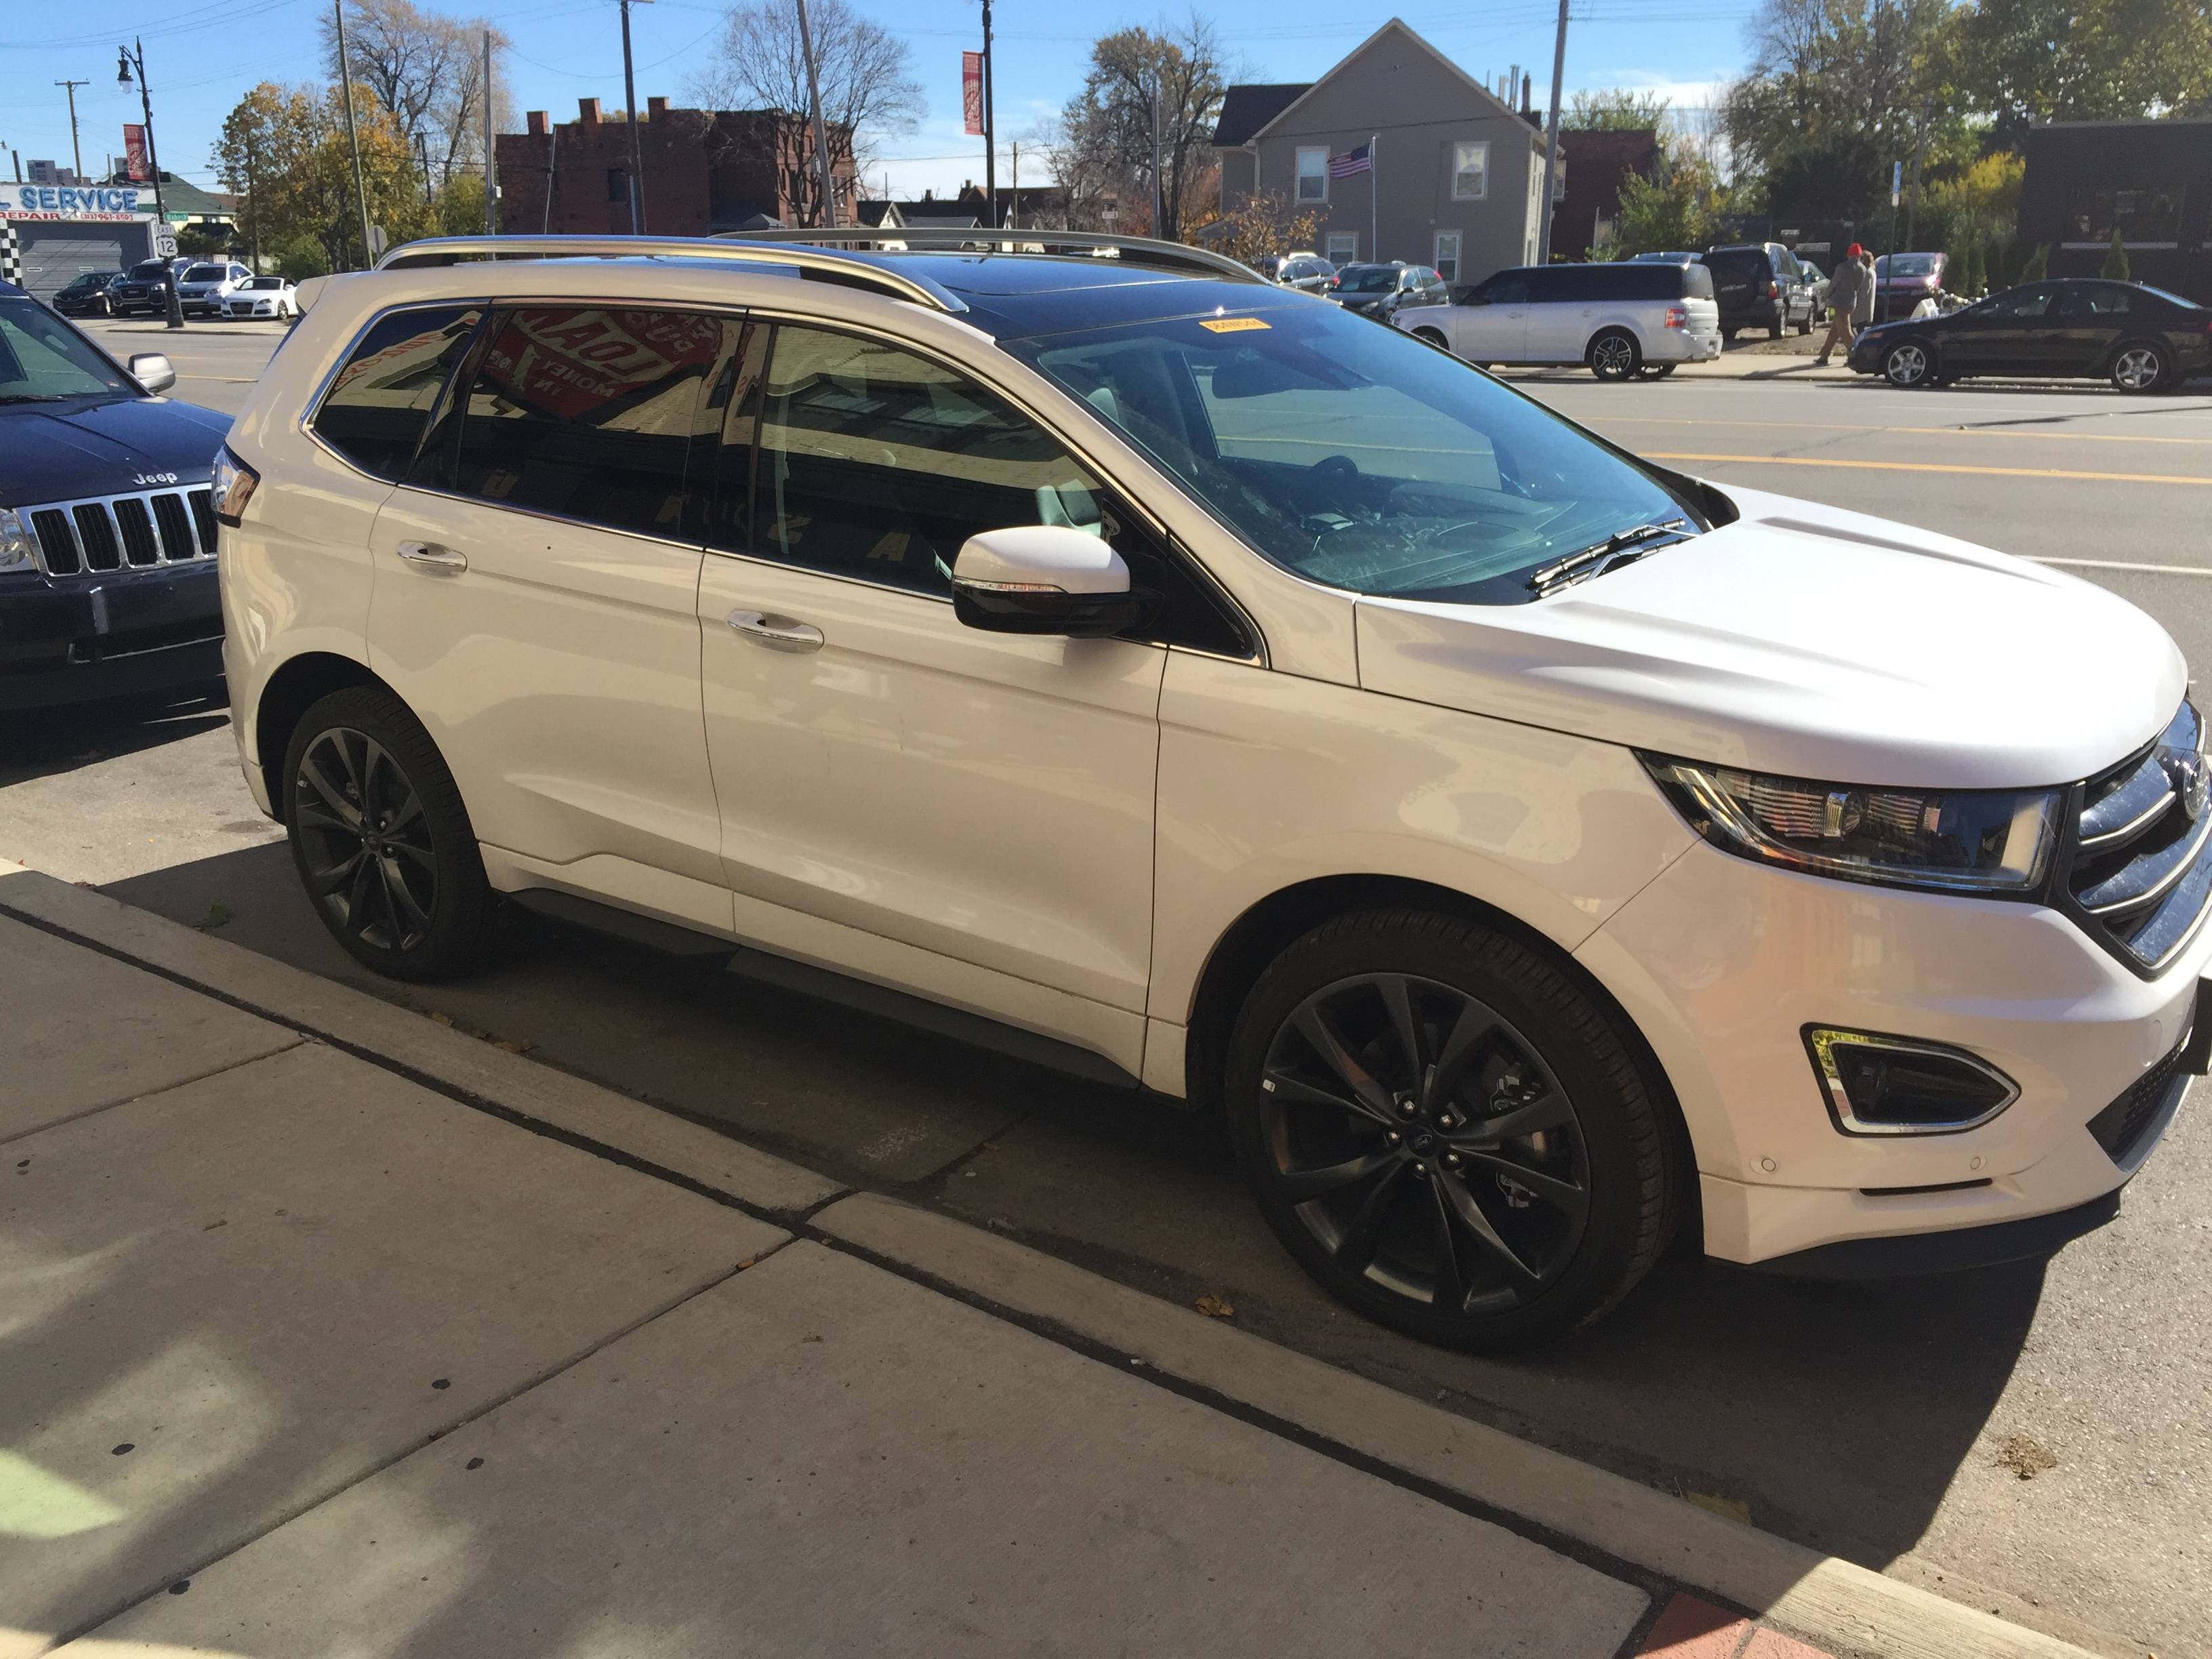 Larger chinese ford edge spotted in michigan ford inside news community